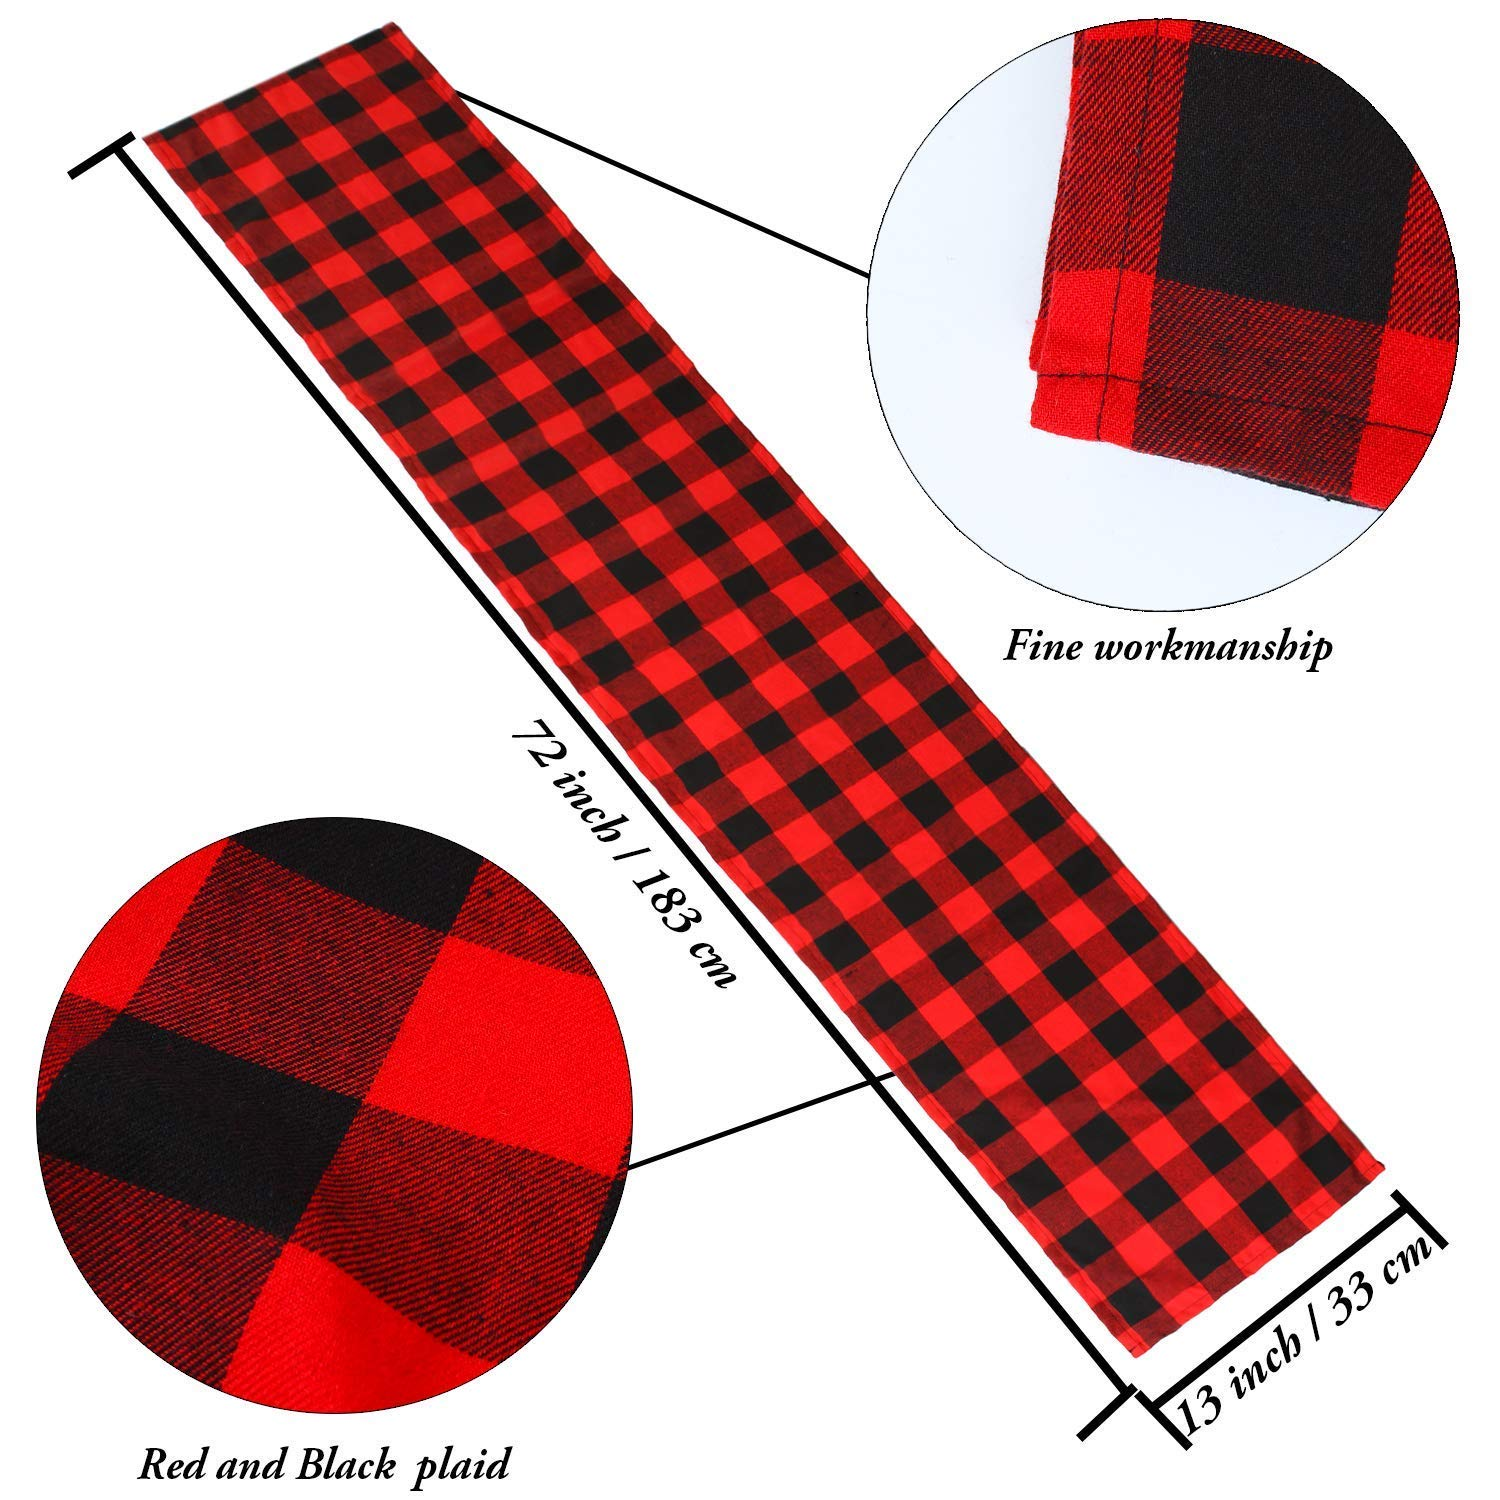 4-Pack-Checkered-Table-Runner-Cotton-Plaid-Table-Runner-Modern-Plaid-Design-U2L6 thumbnail 3